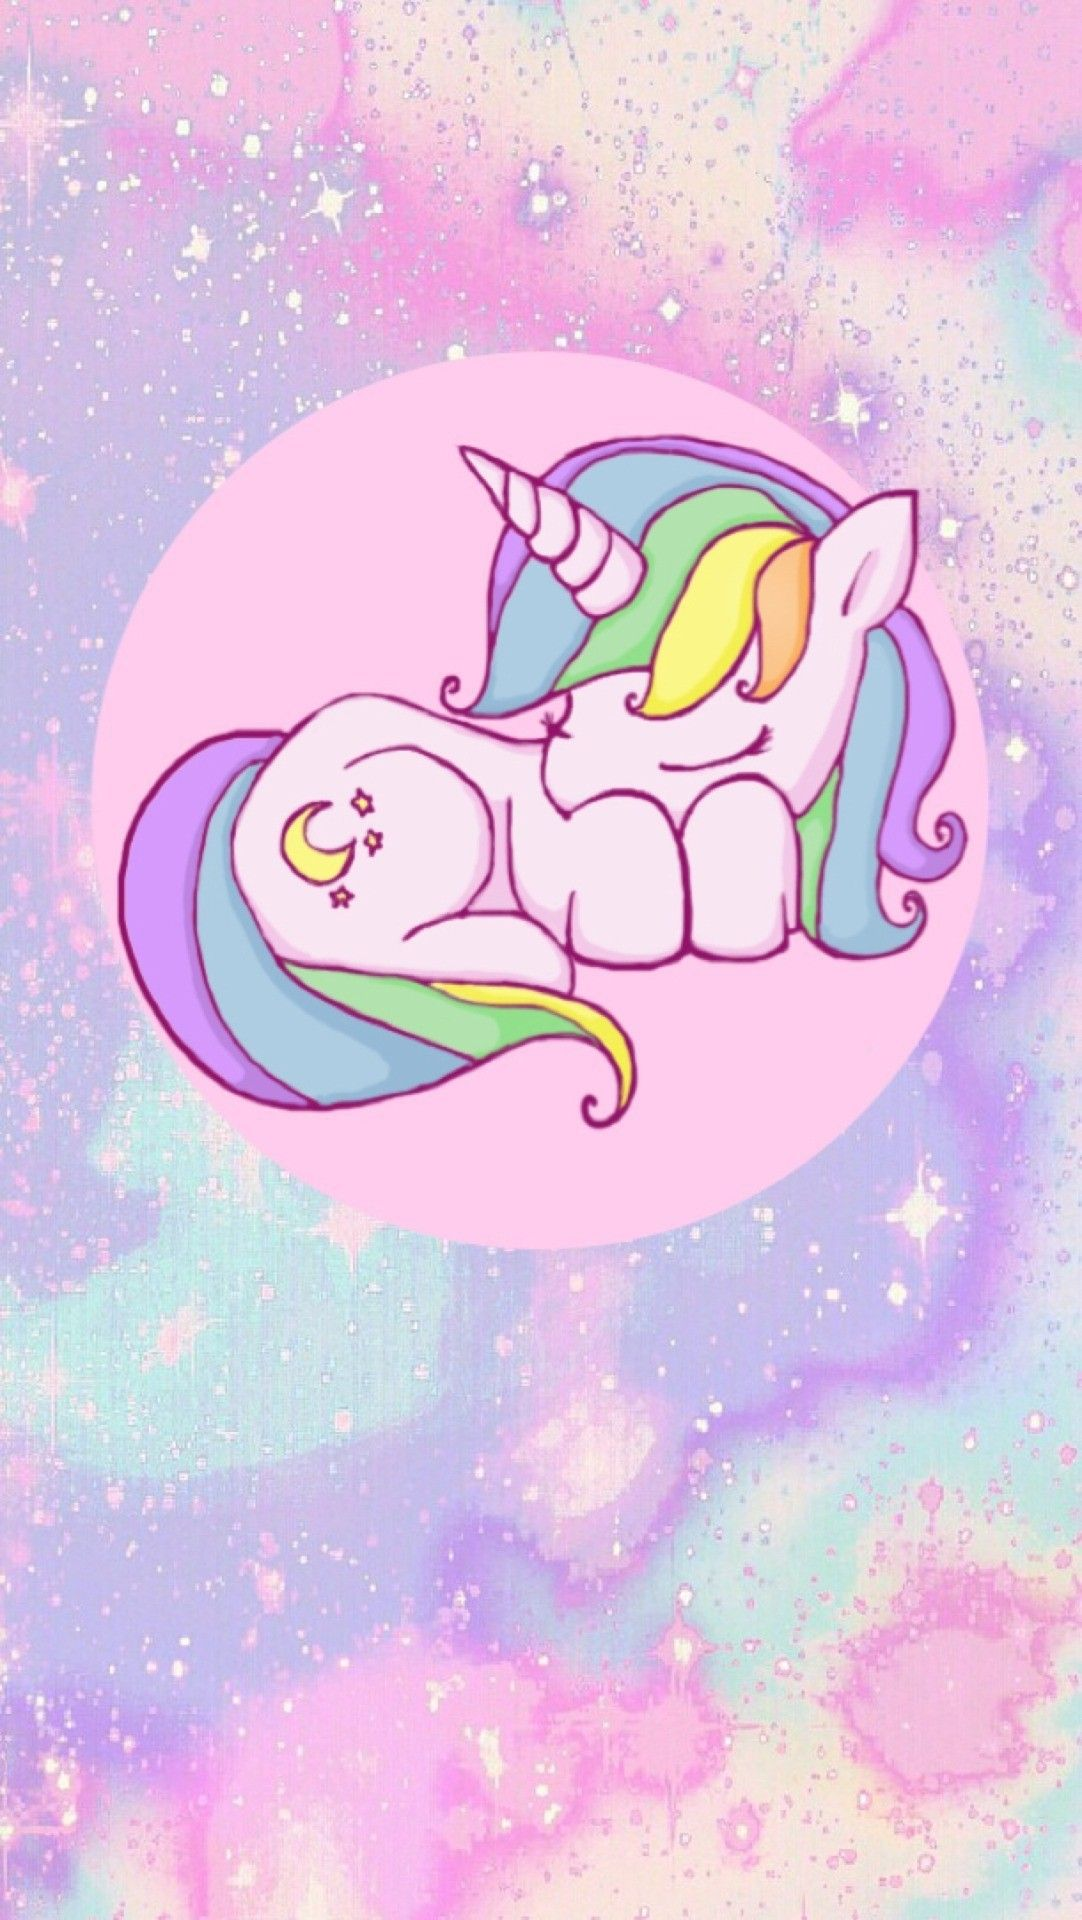 Unicorn Wallpaper Hd 747360 Unicorn Wallpaper Cute Unicorn Wallpaper Pink Unicorn Wallpaper